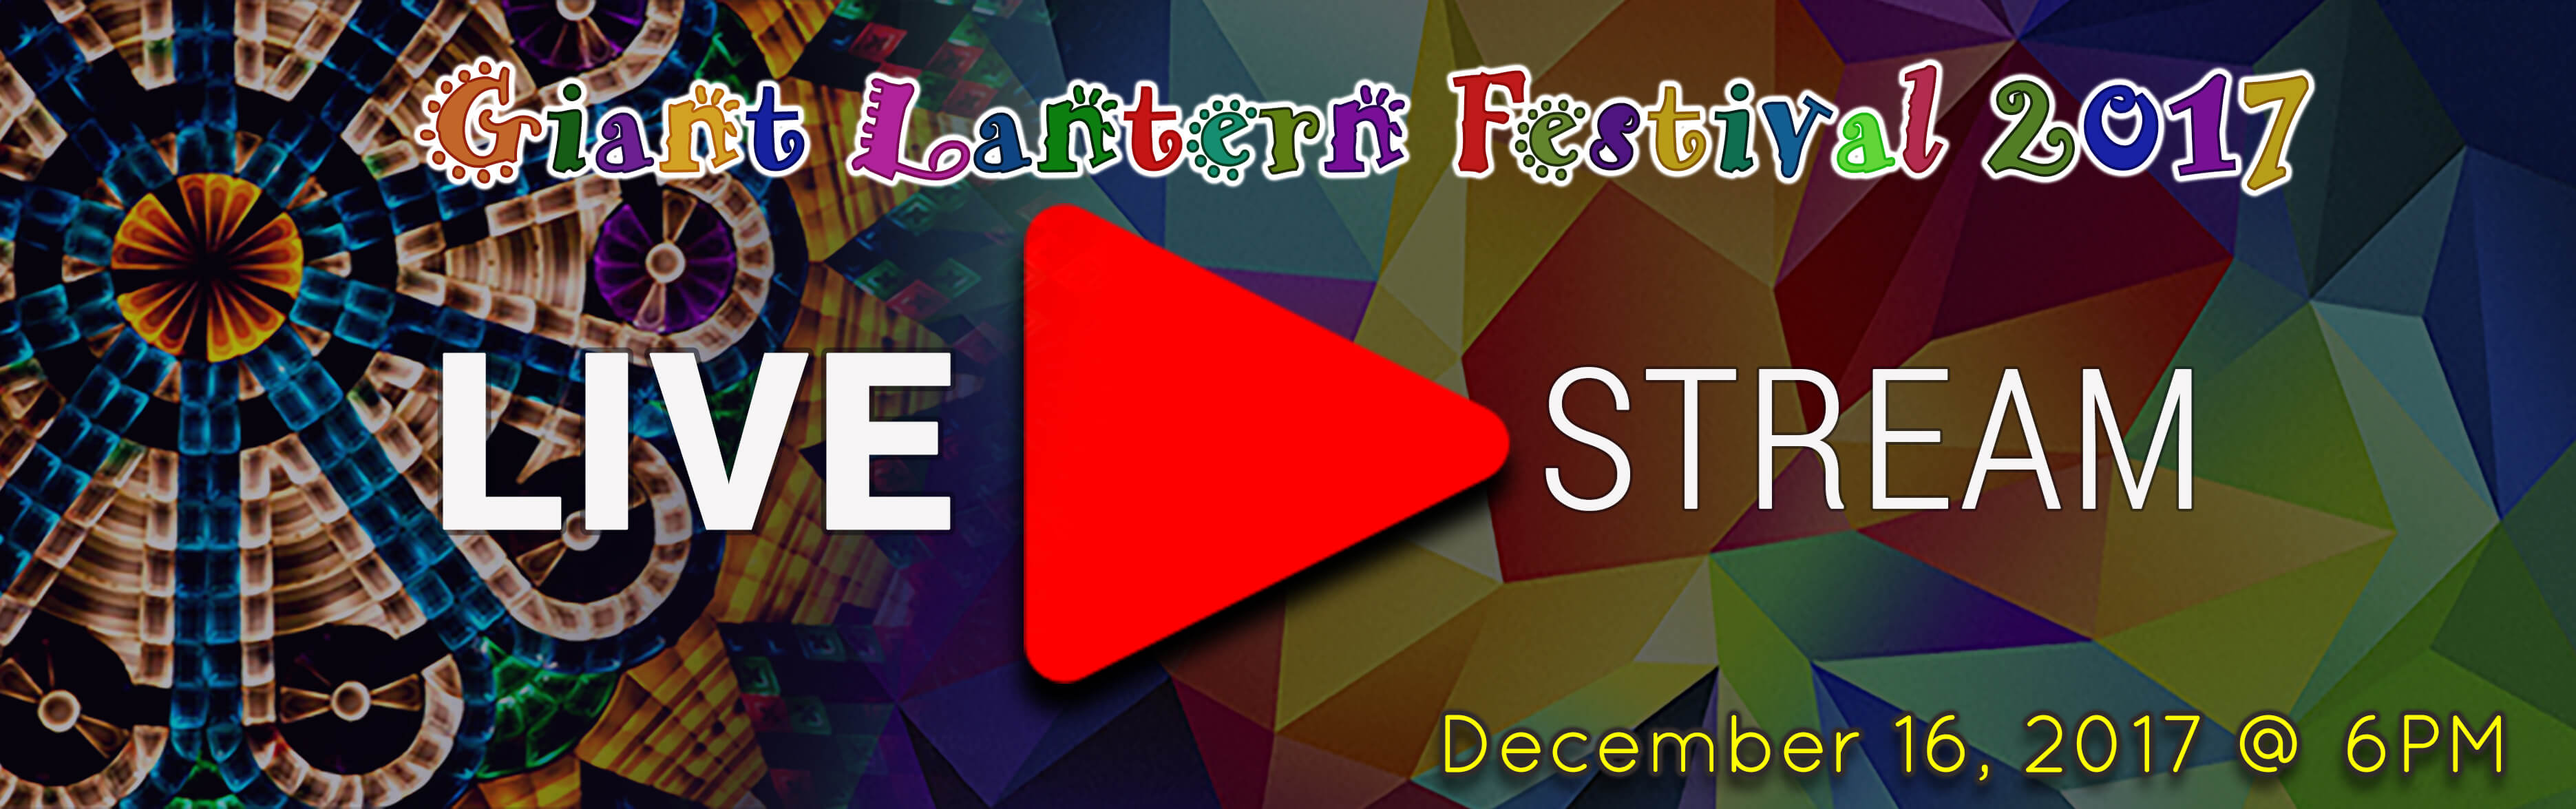 Giant Lantern Festival 2017 will be aired here live on Dec. 16, 2017 (Saturday)